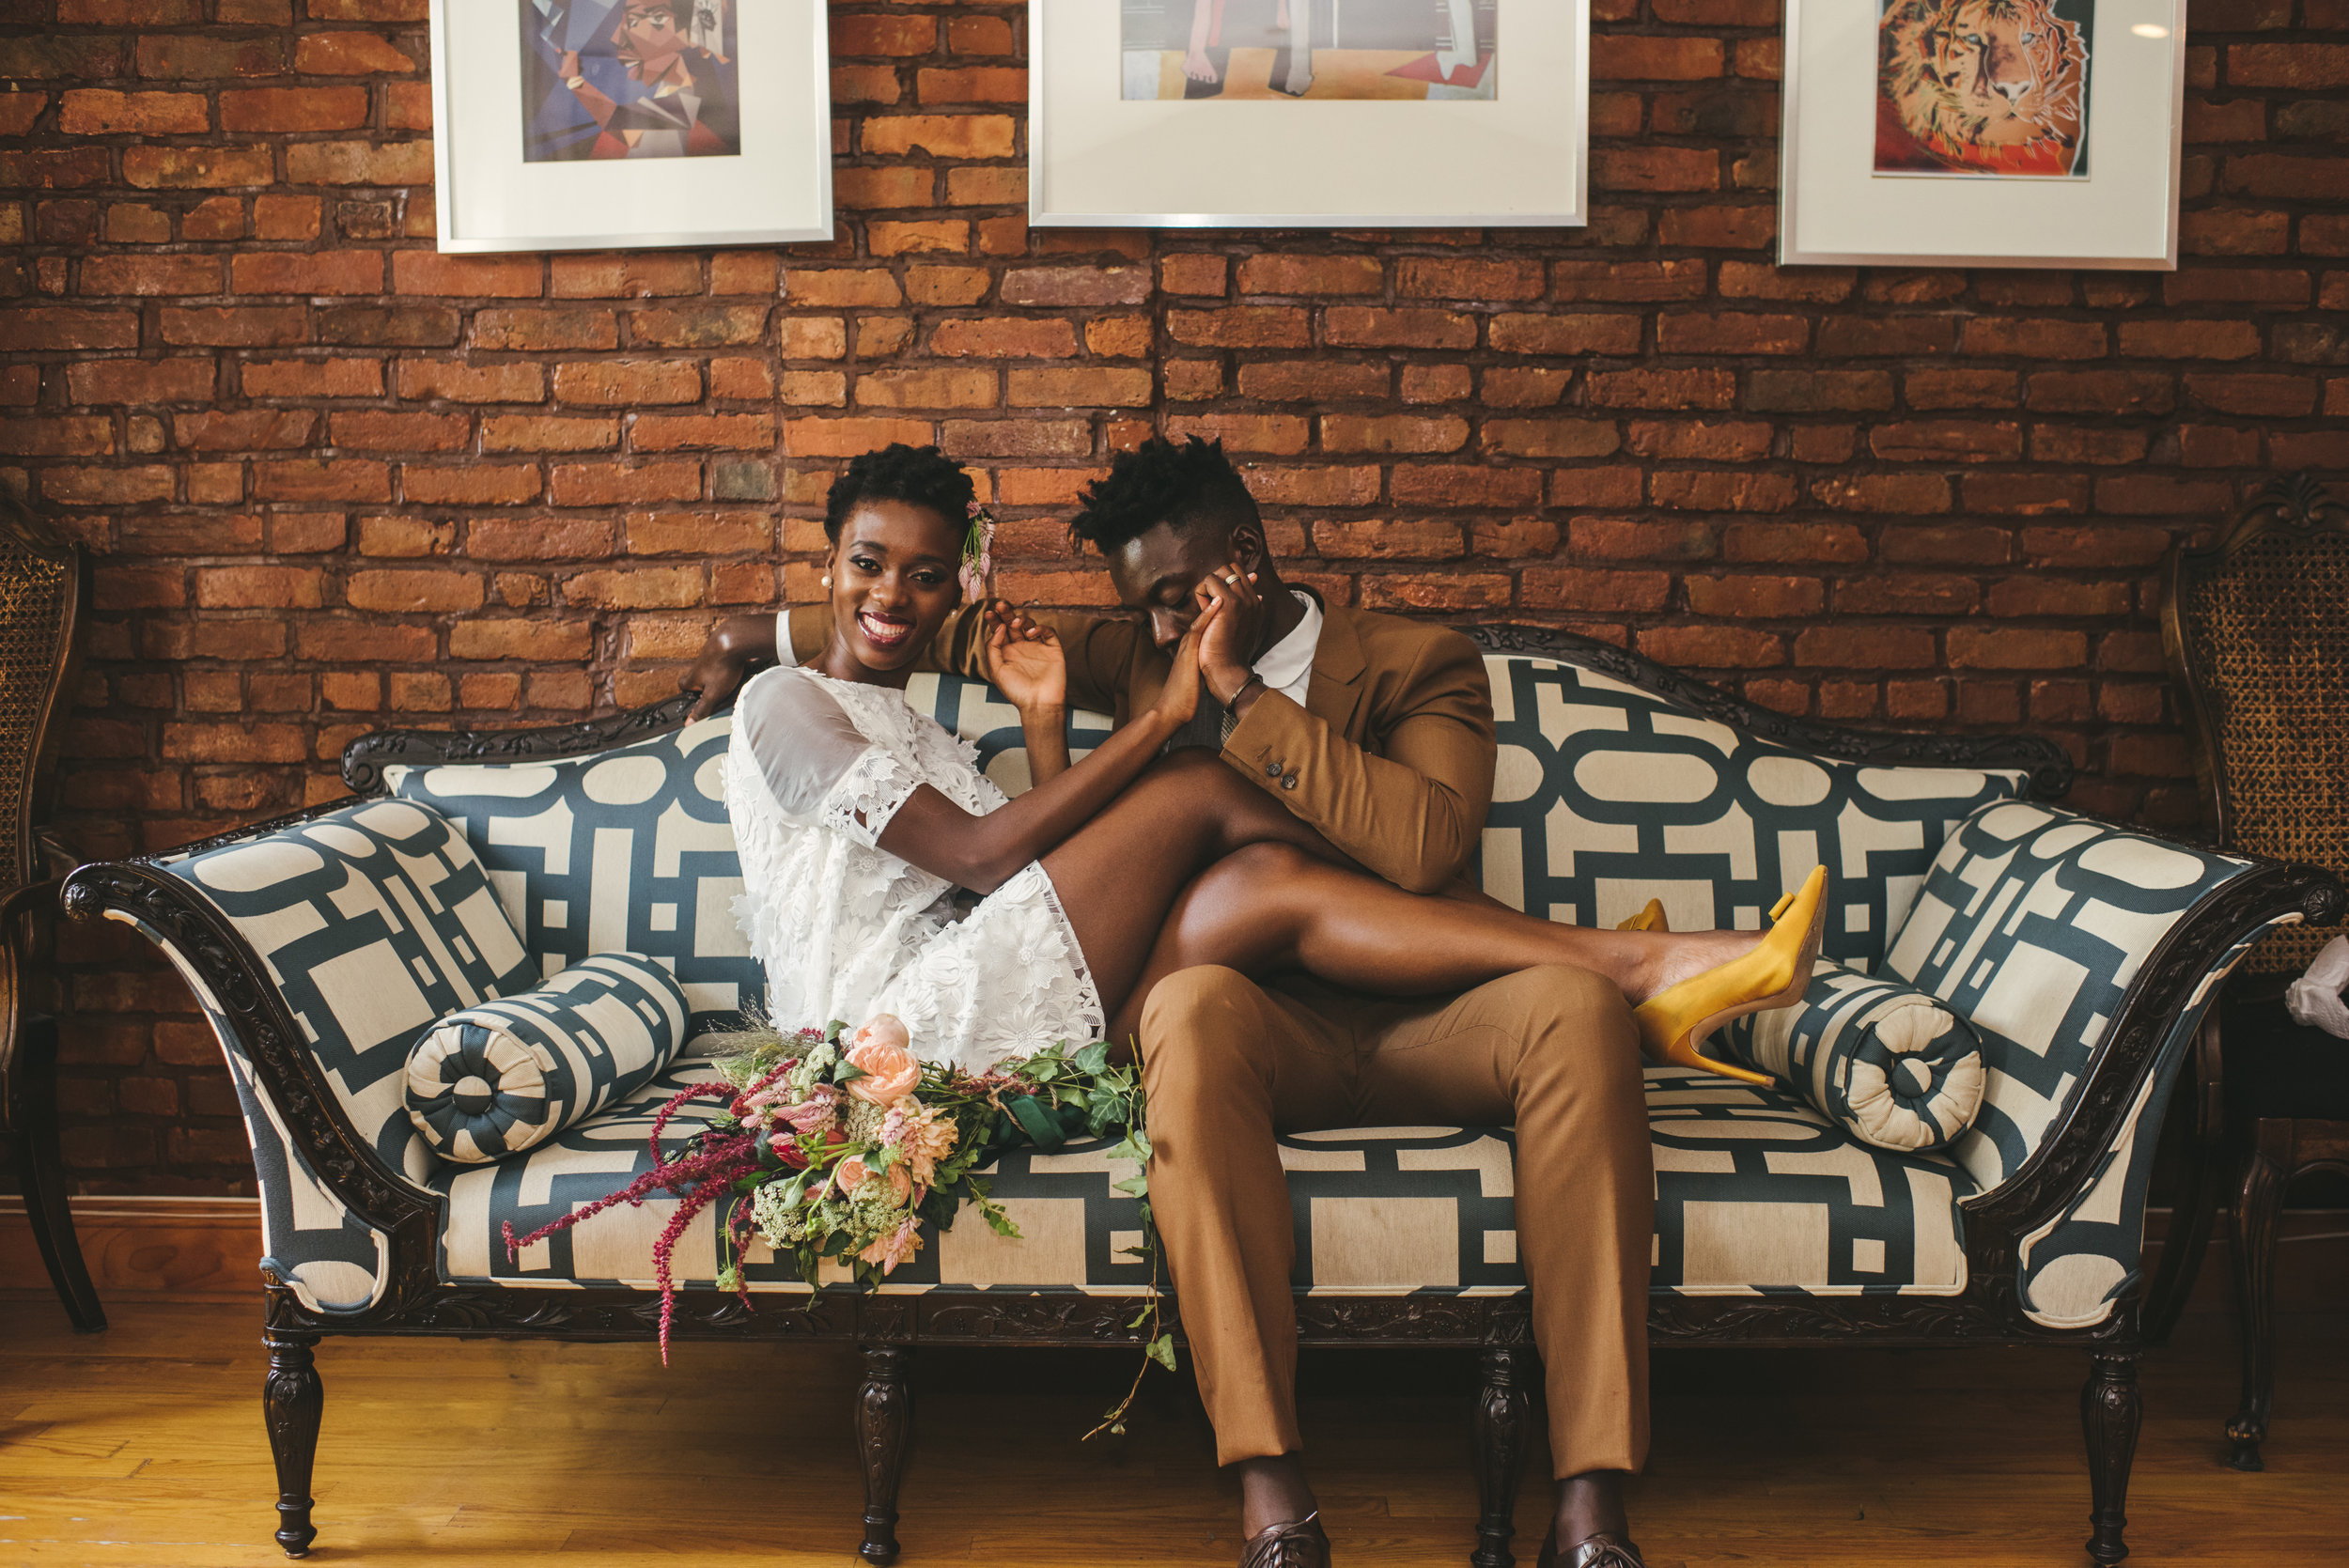 BROOKLYN BRIDE - INTIMATE WEDDING PHOTOGRAPHER - TWOTWENTY by CHI-CHI AGBIM-71.jpg